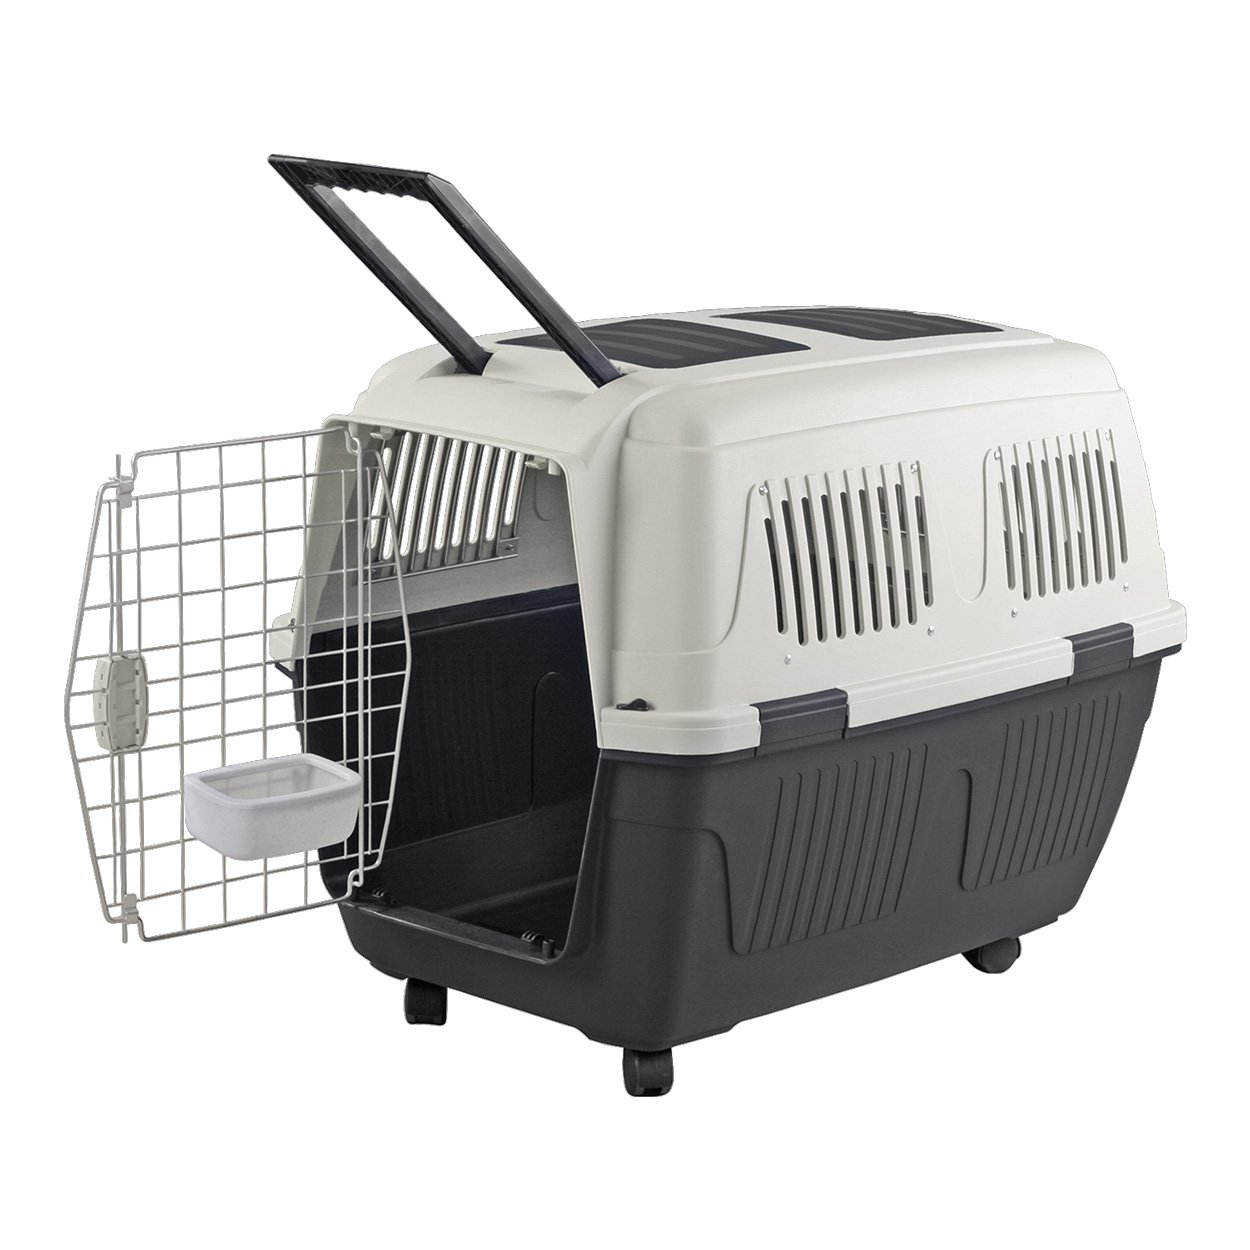 Animal Treasures PS7912 Deluxe Dog Kennel, 3X-Large/40'', Gray/White